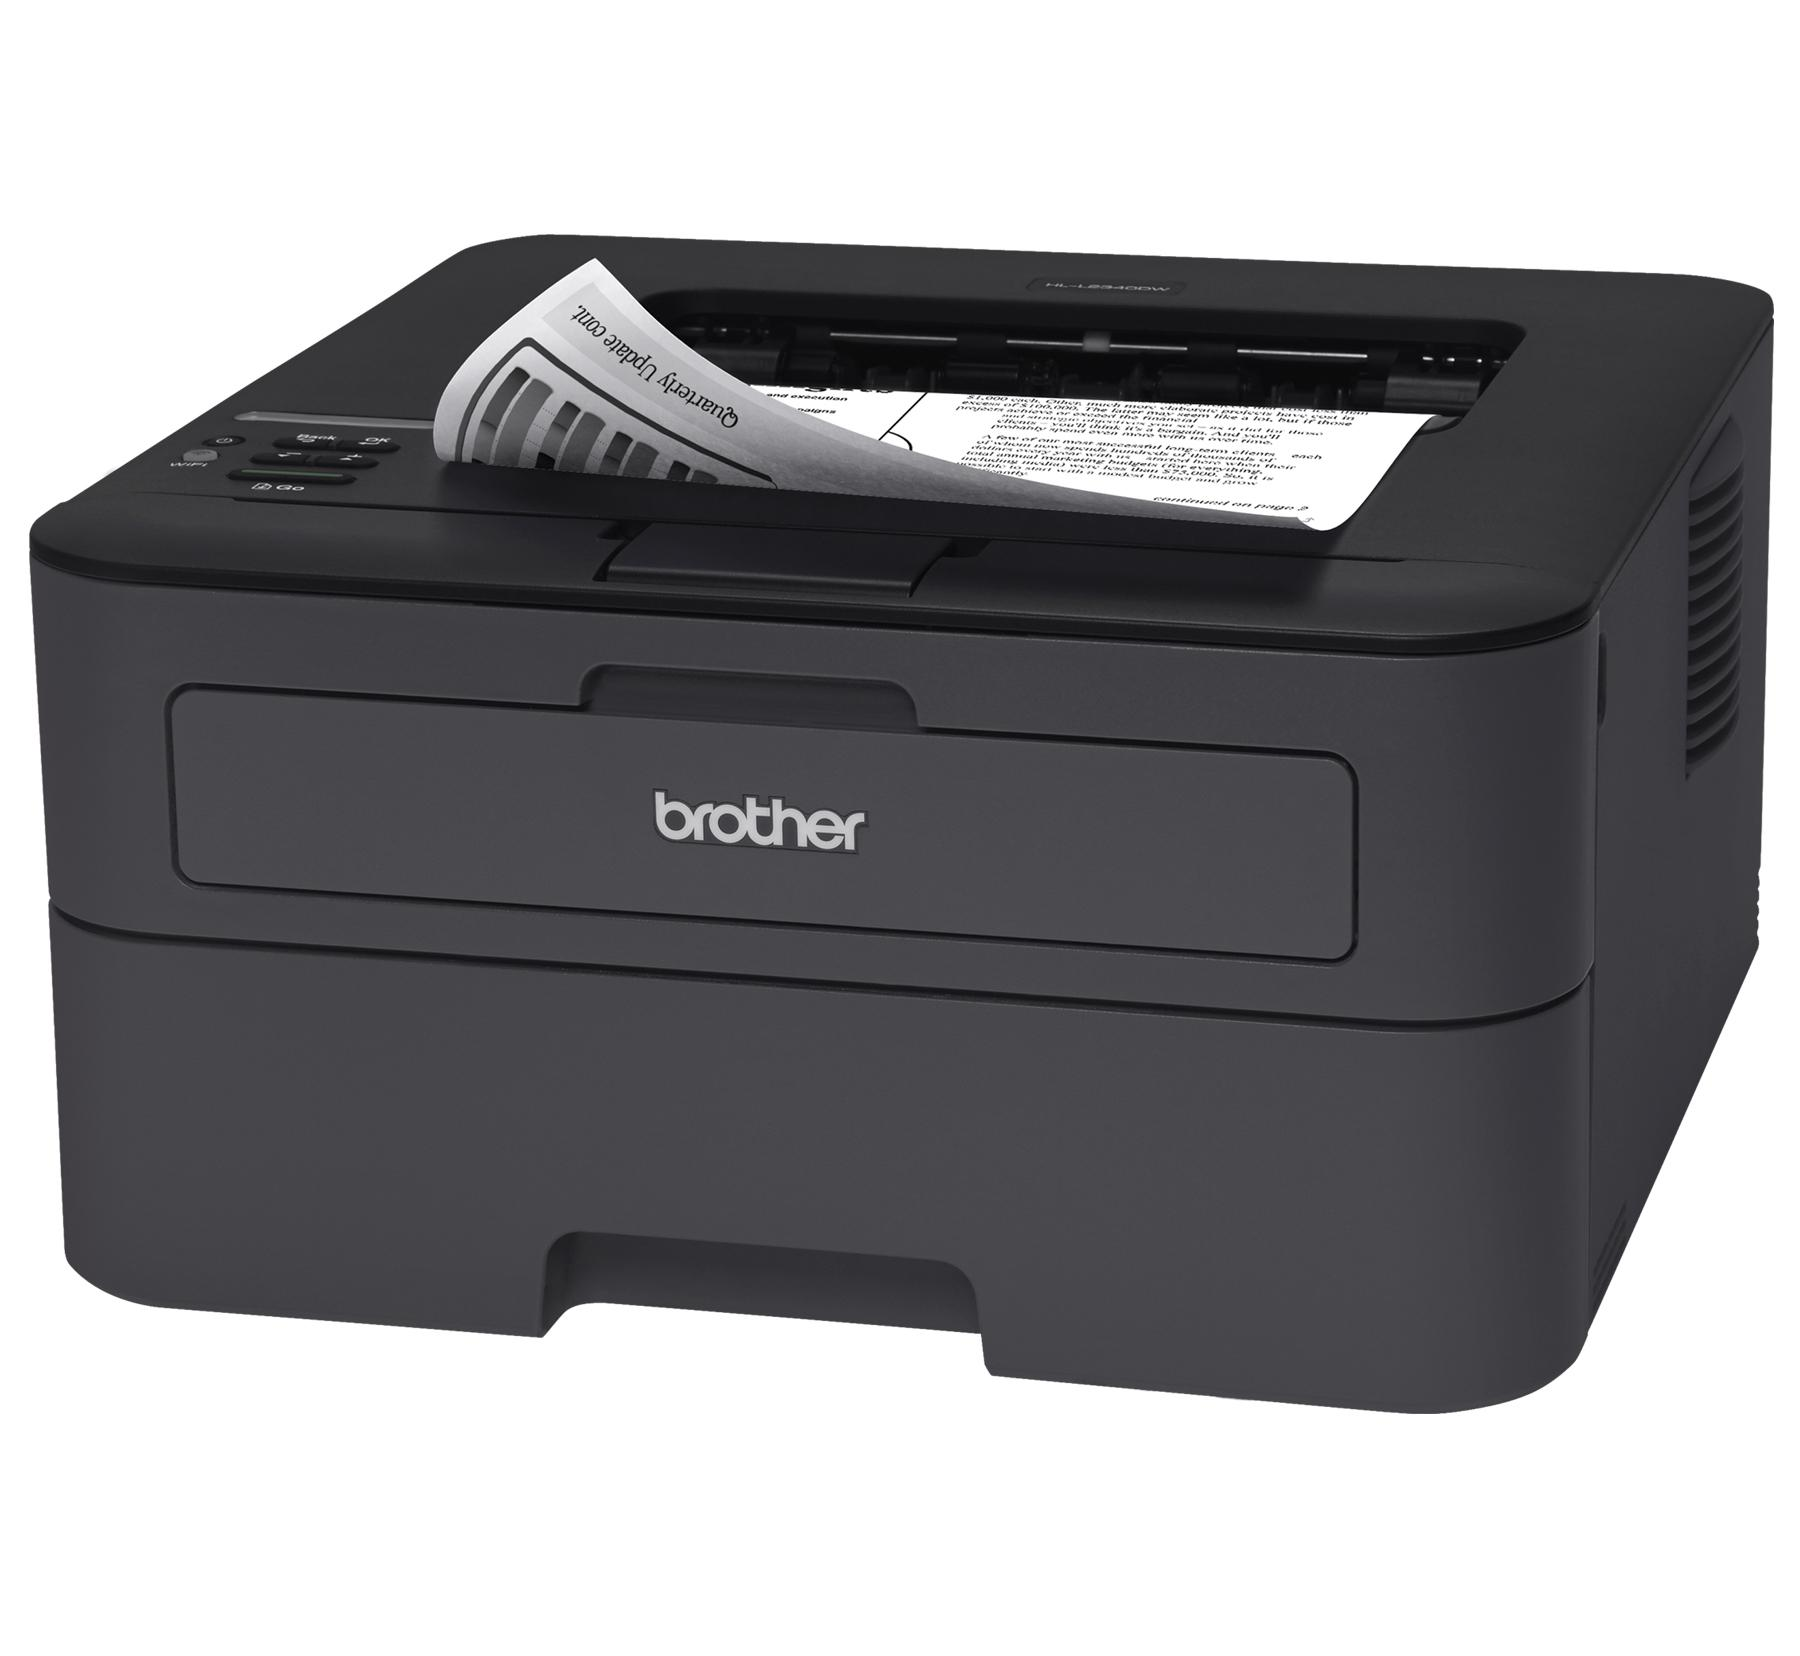 Amazon.com: Brother HL-L2340DW Compact Laser Printer ...